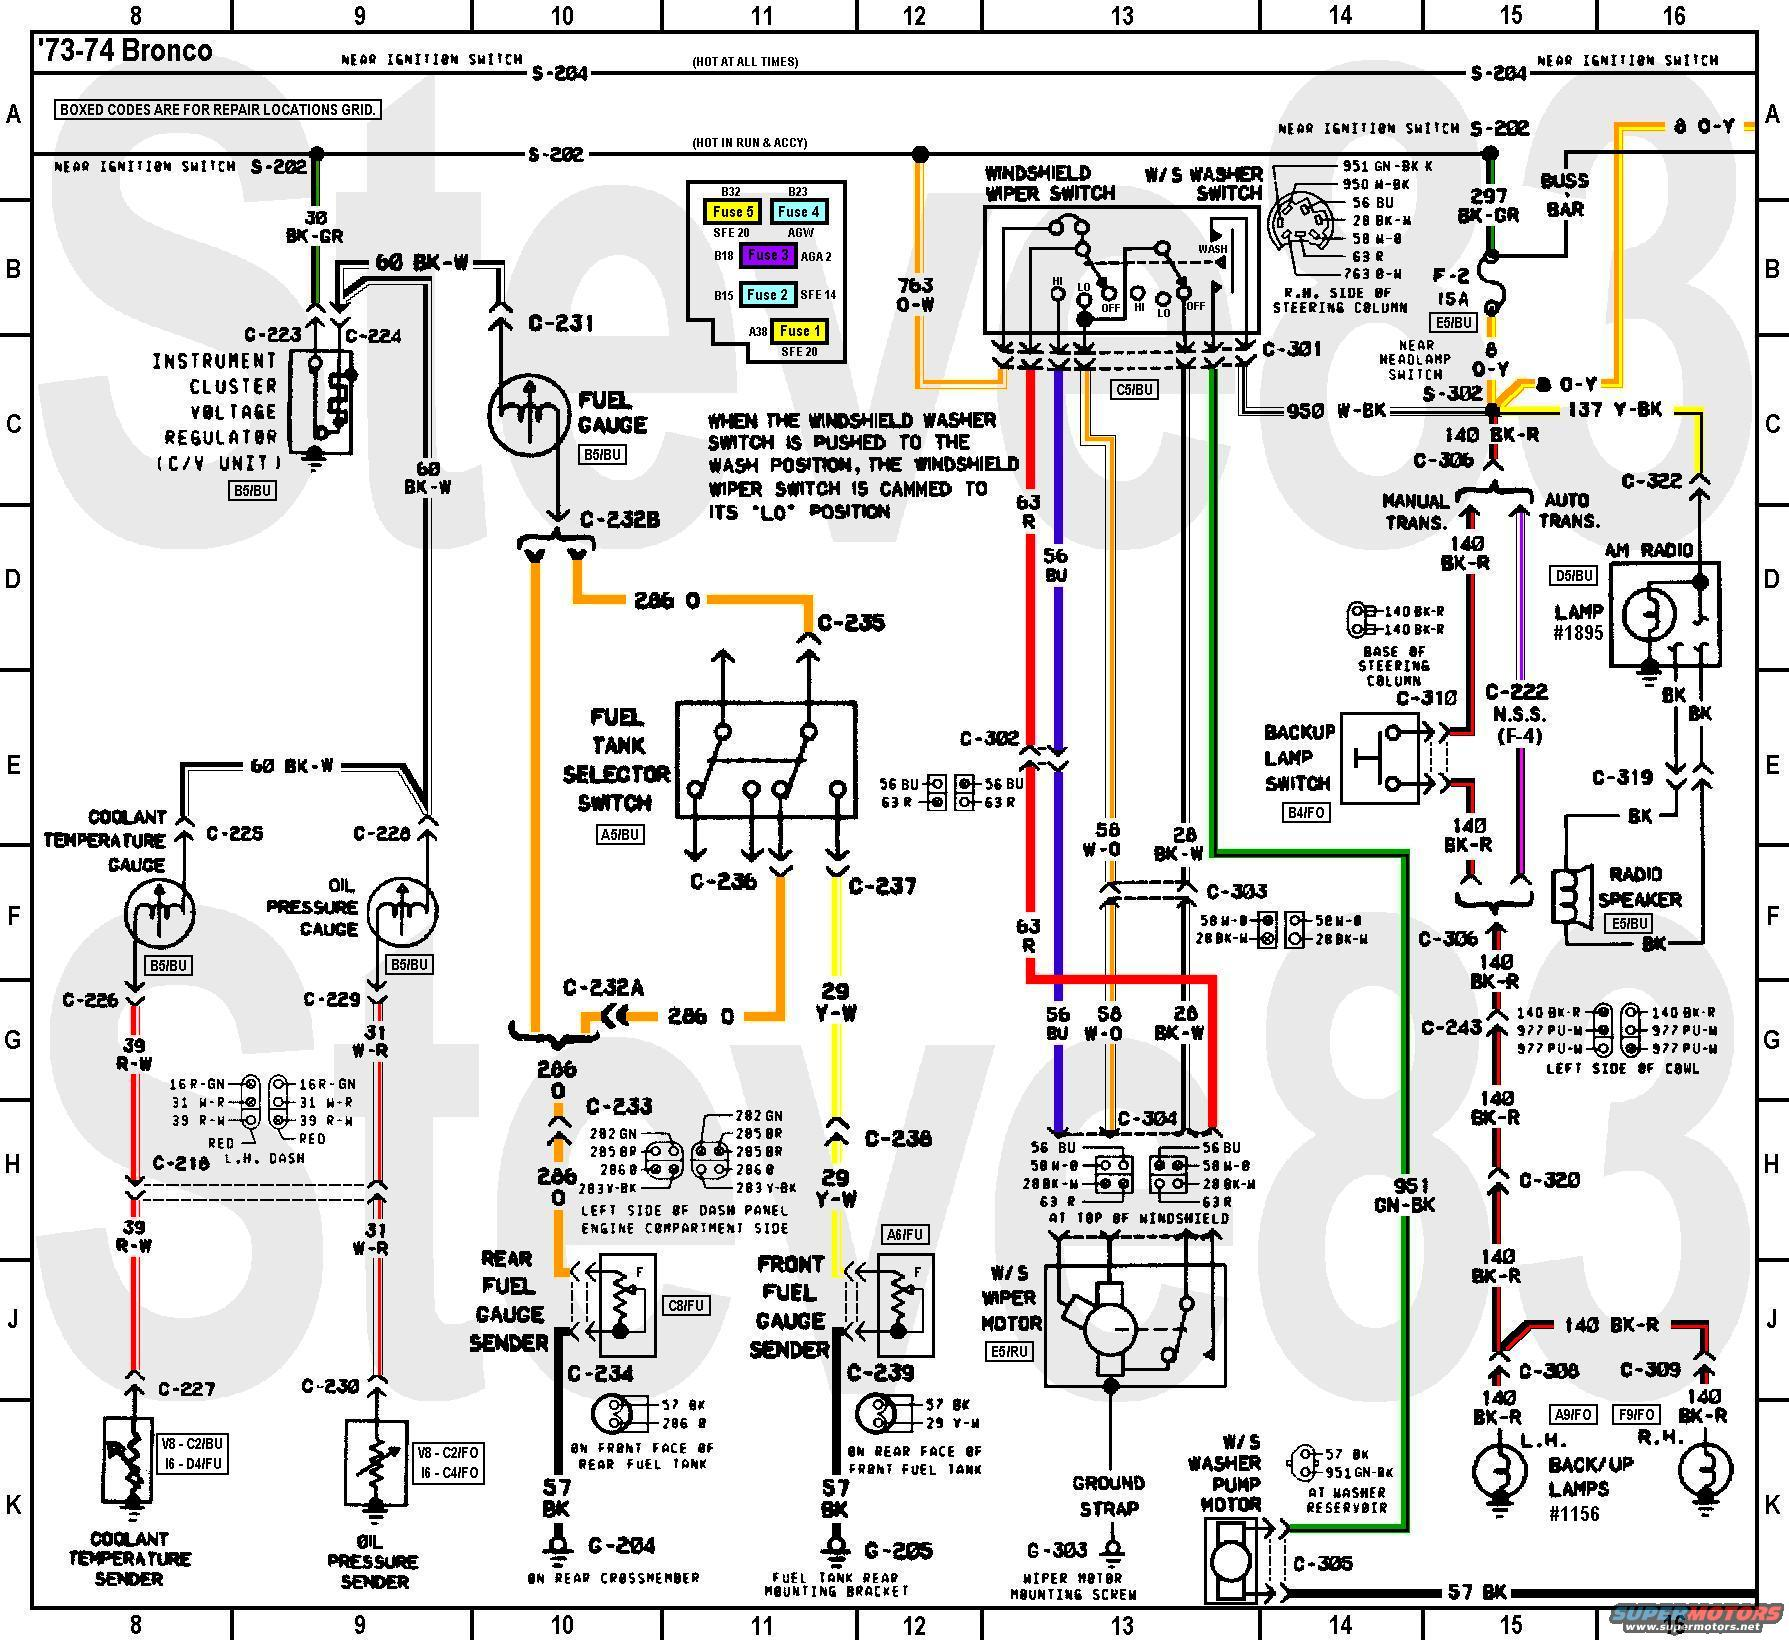 1978 ford bronco alternator wiring diagram schematic diagrams rh ogmconsulting co Ford 3 Wire Alternator Diagram Ford Alternator Wiring Hook Up